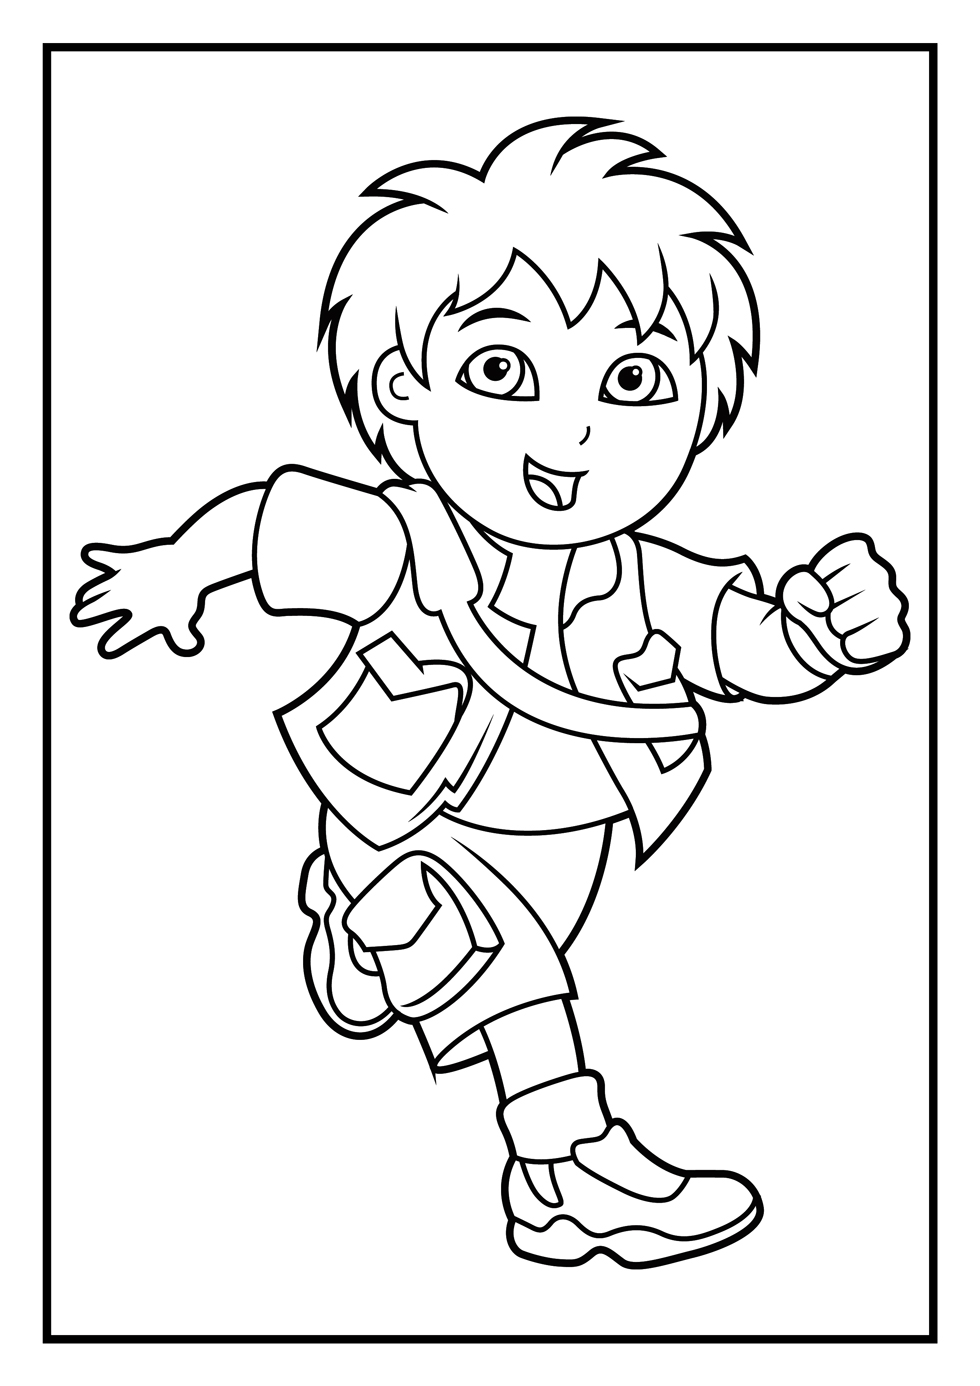 deigo coloring pages - photo#10